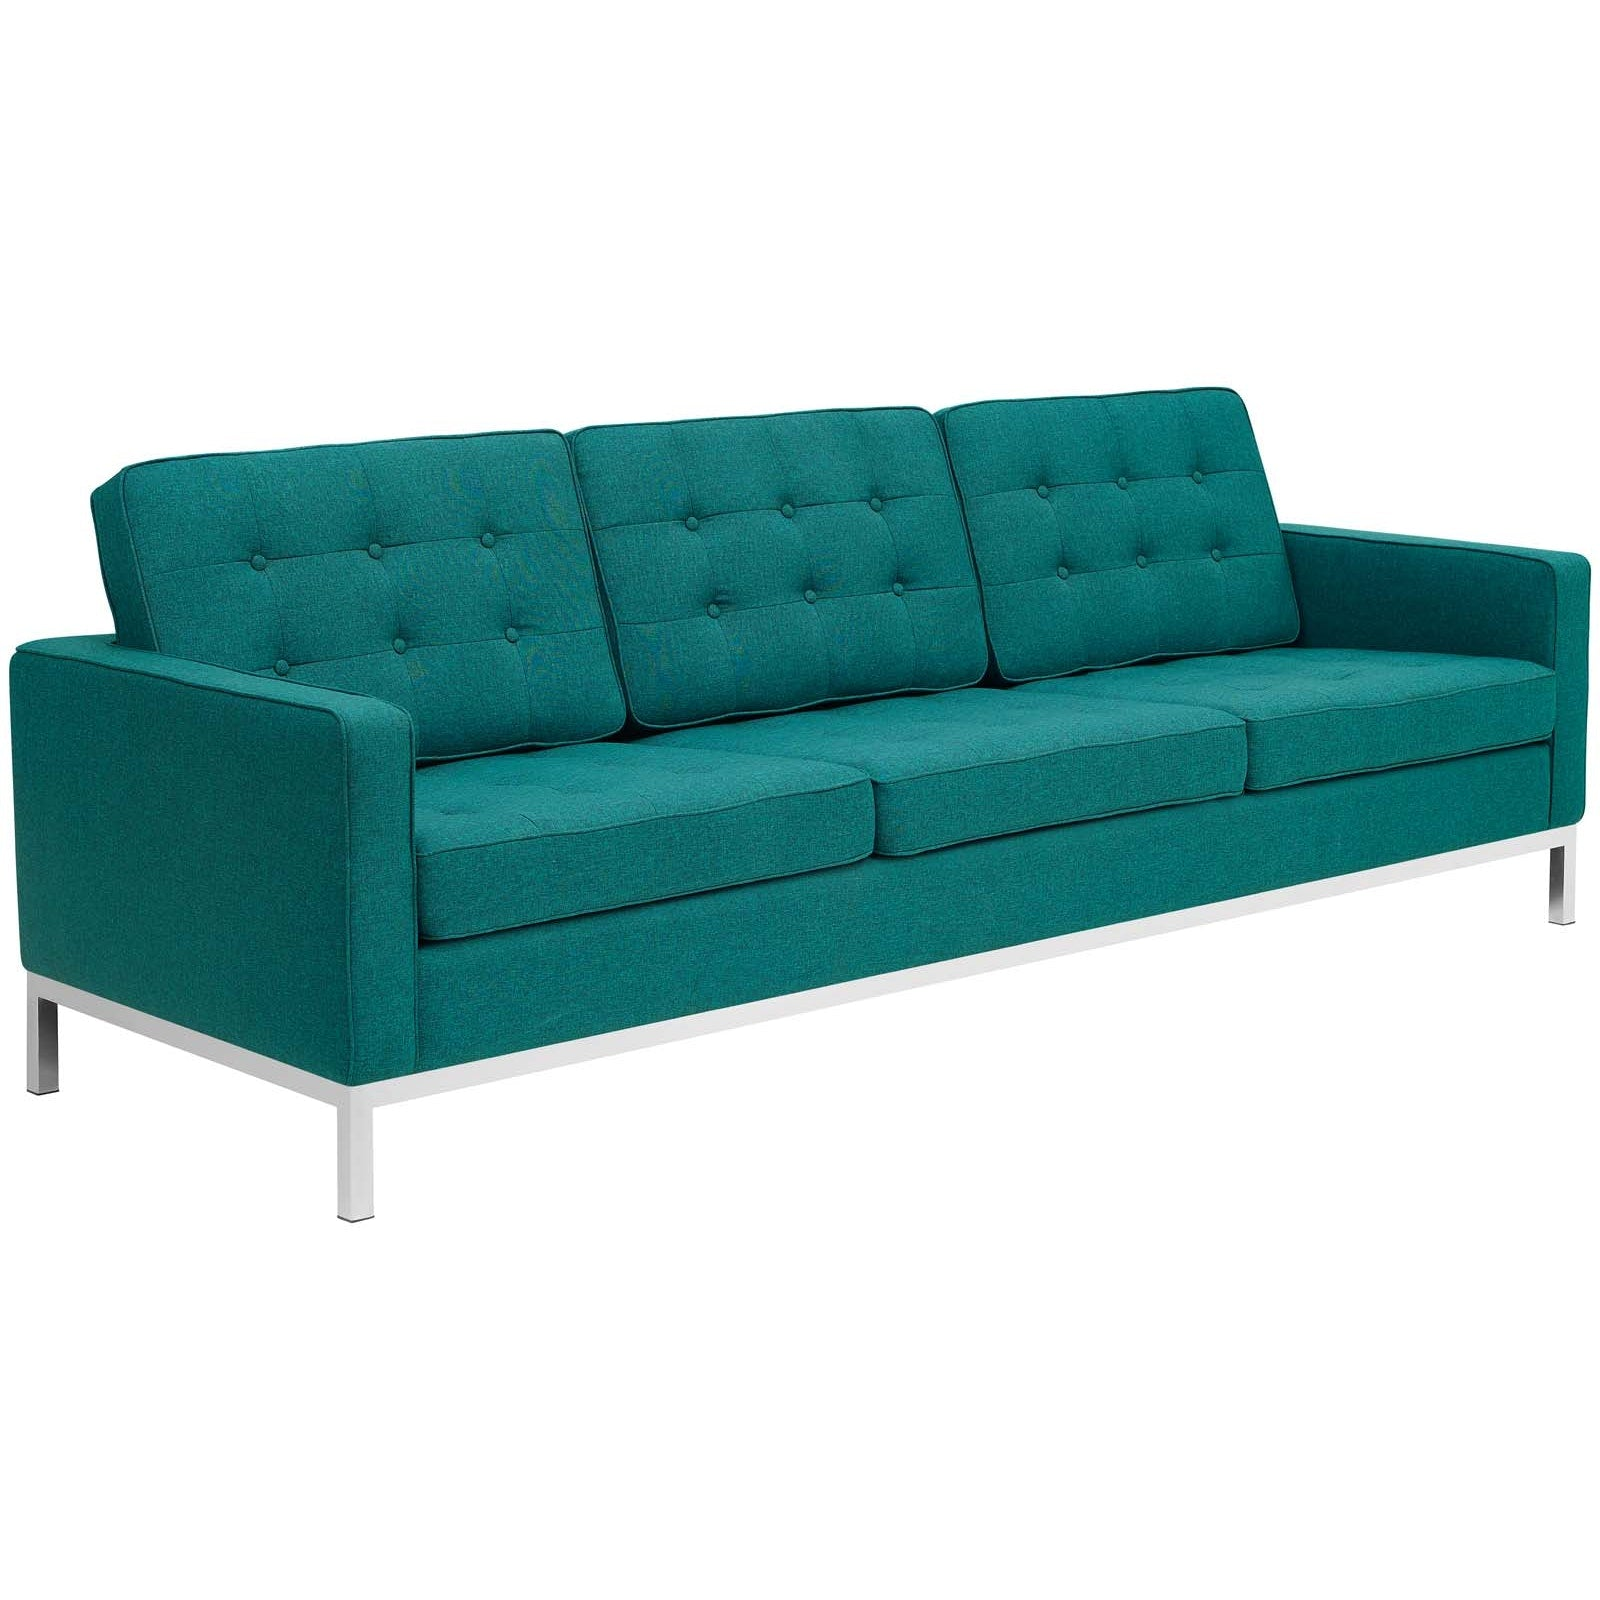 Loft Upholstered Fabric Sofa - Teal